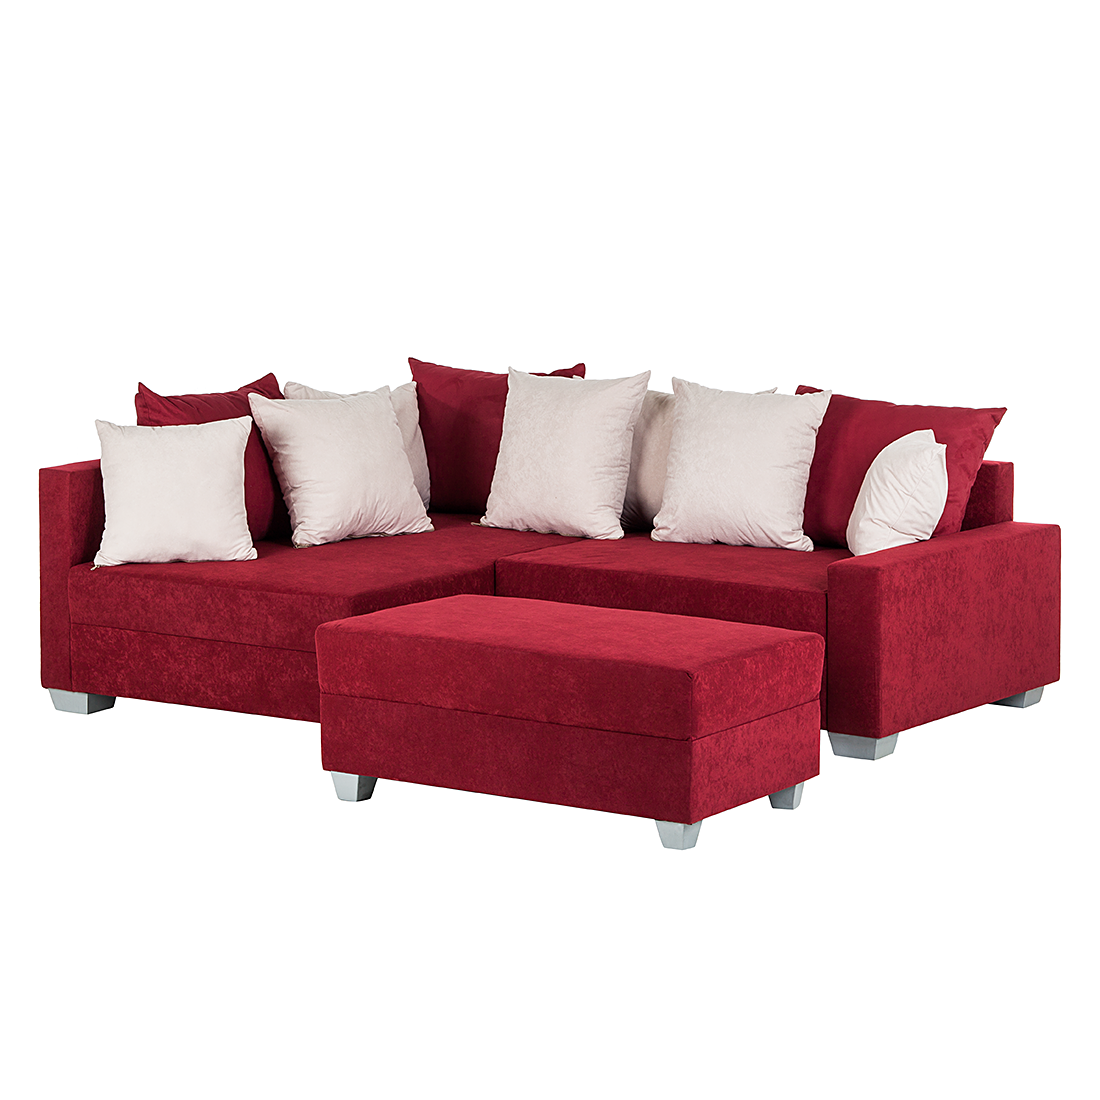 ecksofa hocker wohnlandschaft polsterecke microfaser rot beige sofa couch neu. Black Bedroom Furniture Sets. Home Design Ideas